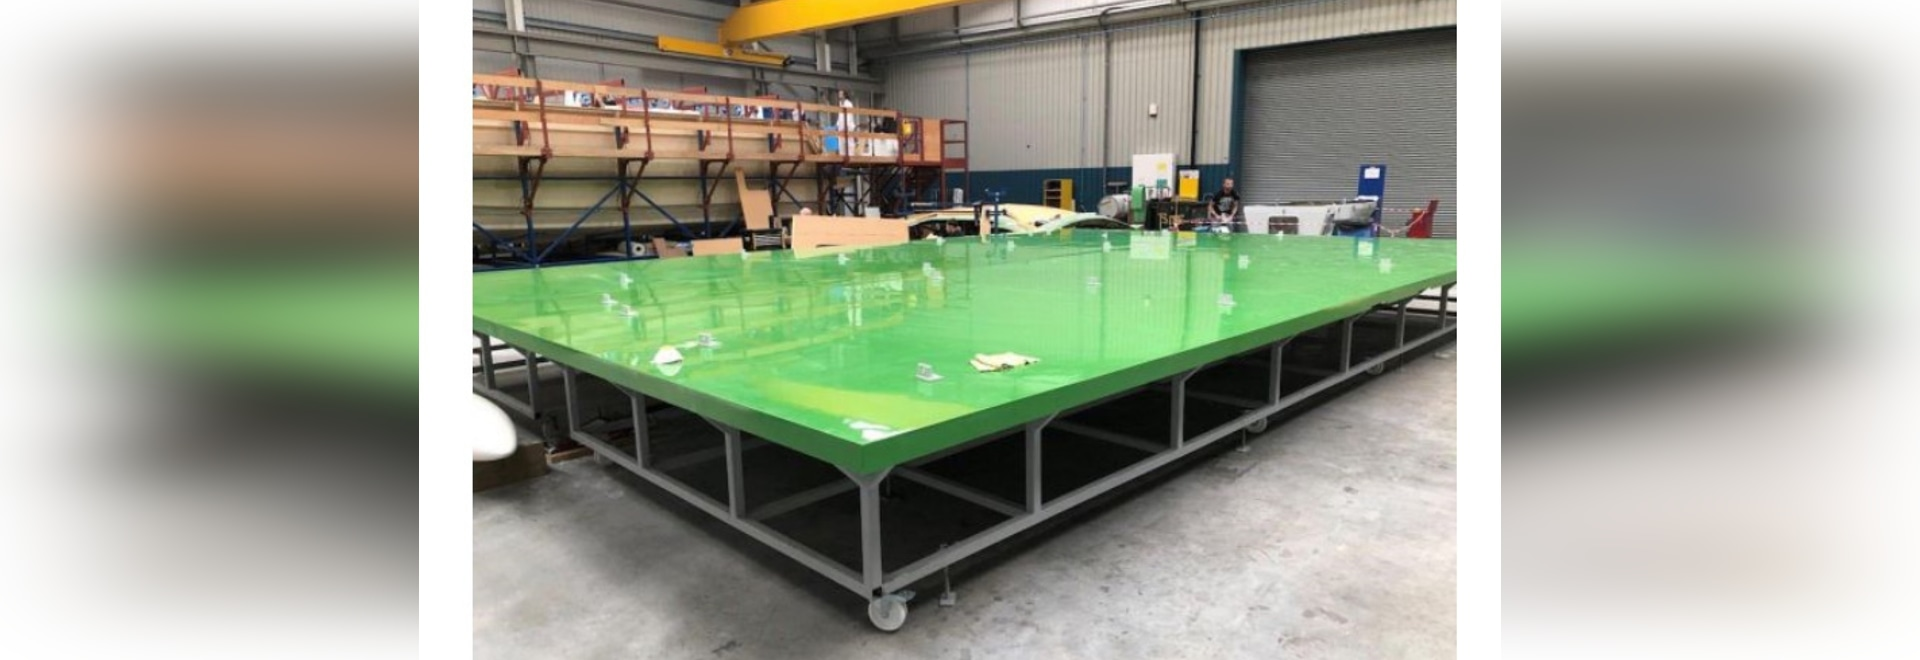 The new 10m x 7m infusion table will enable Oyster Yachts to build its largest bulkheads in-house